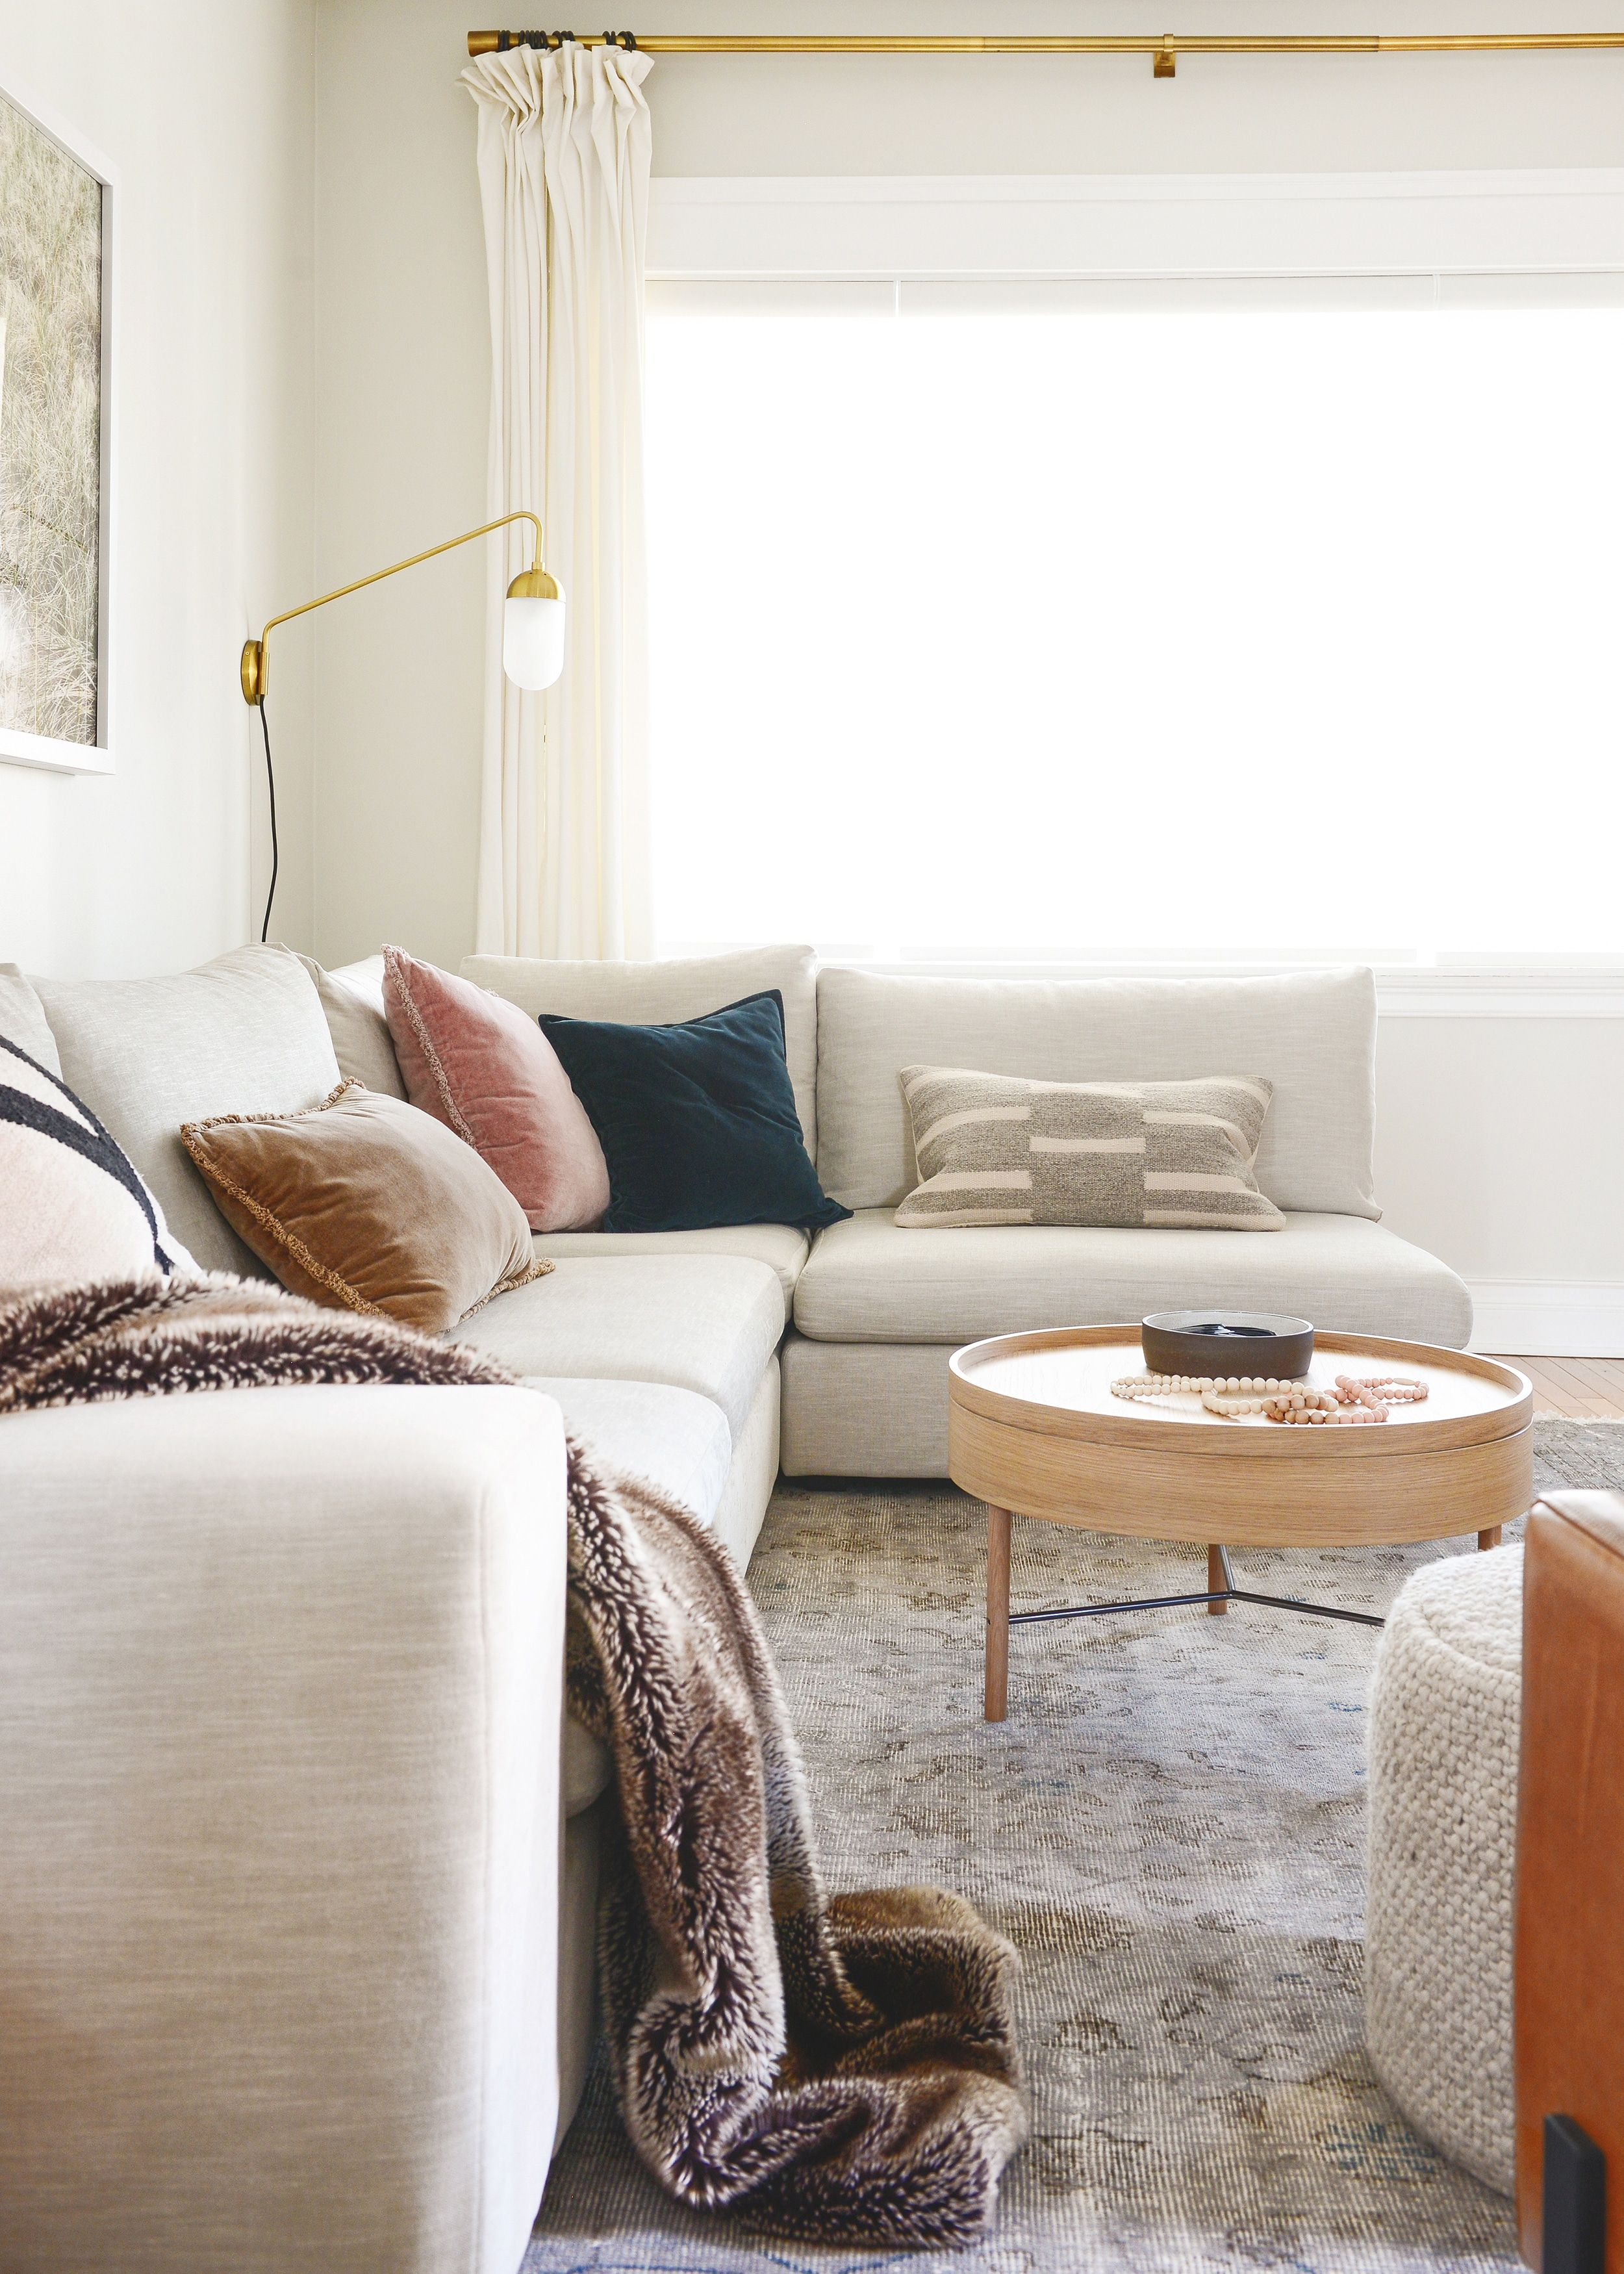 6 Things You Can Do Today To Take Better Photos Of Your Home Living Room Design Small Spaces Small Living Rooms Coffee Table Small Space #small #living #room #lamp